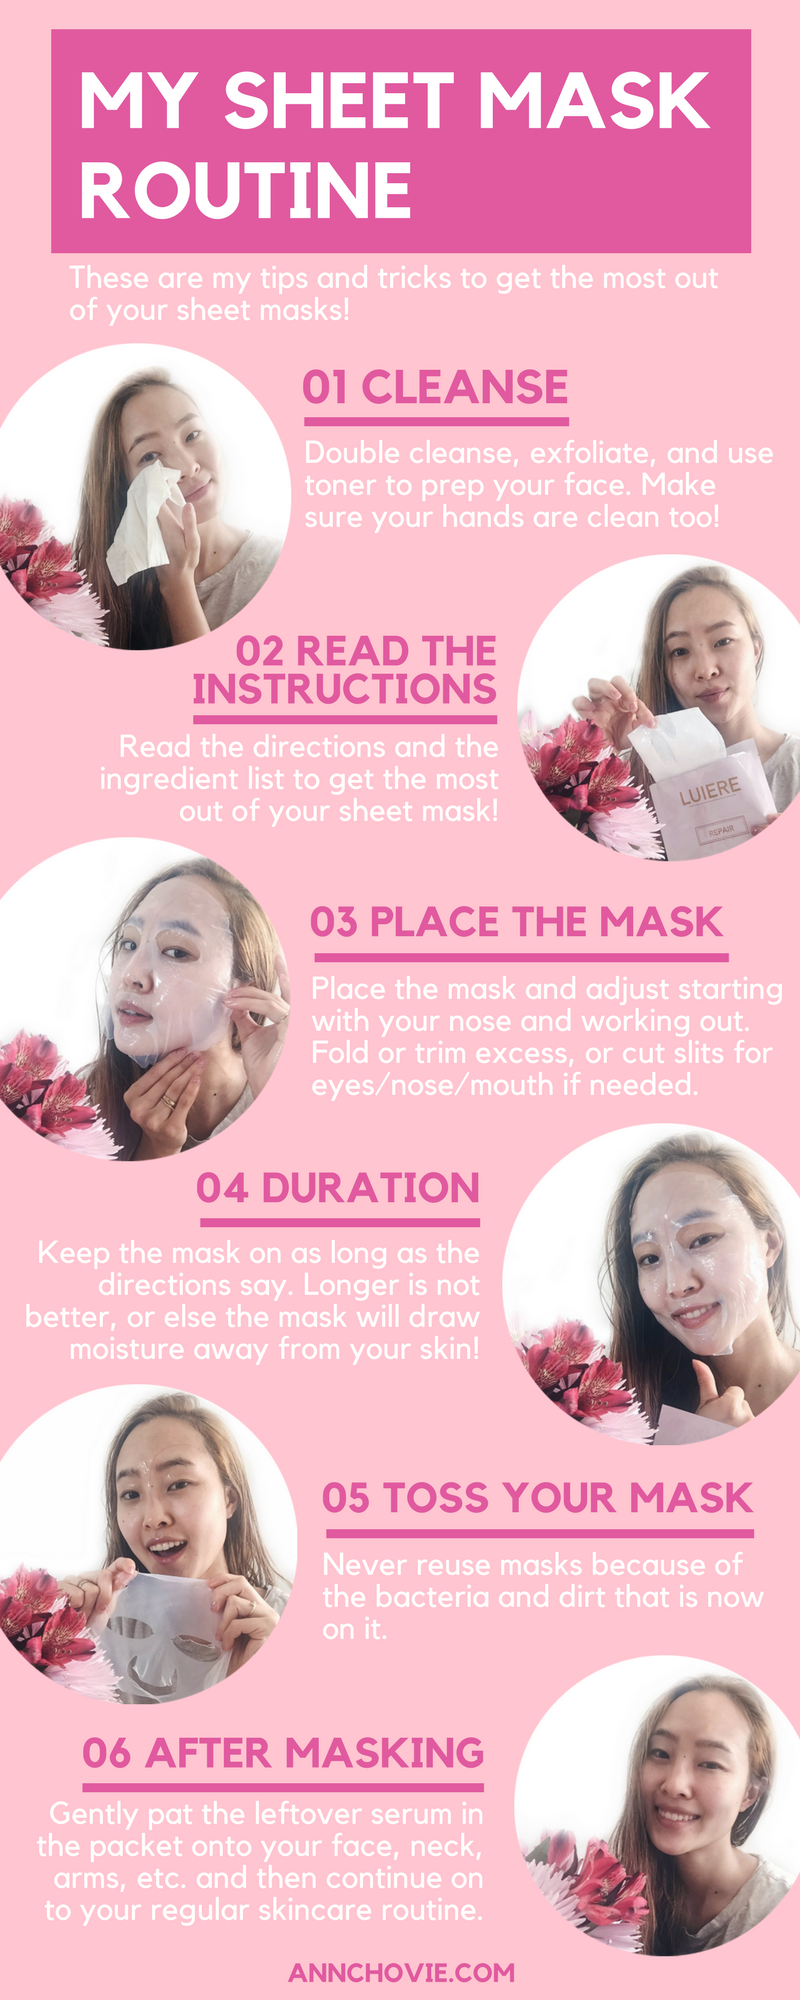 While sheet masks are definitely easy to use, there are common mistakes that even I have committed in the past. I've put together my routine with the dos and don'ts,and tips and tricks to get the most out of your sheet masks.| BEST SHEET MASKS YOU NEED TO TRY | SHEET MASK ROUTINE | BEST FACE MASKS | KOREAN BEAUTY |